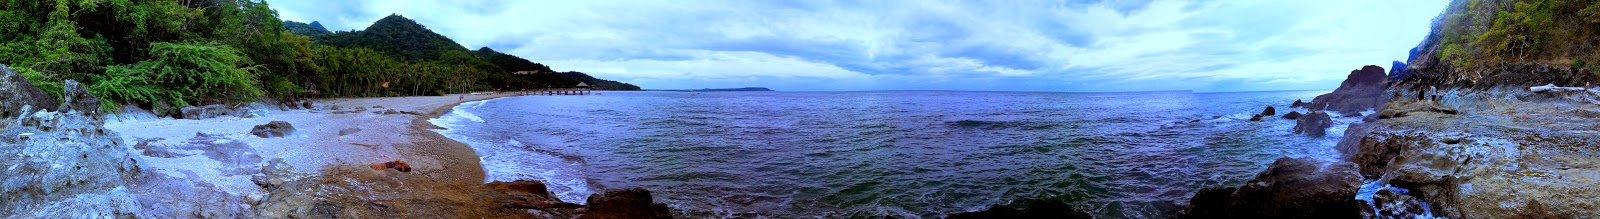 Panorama of Laiya Beach Cove